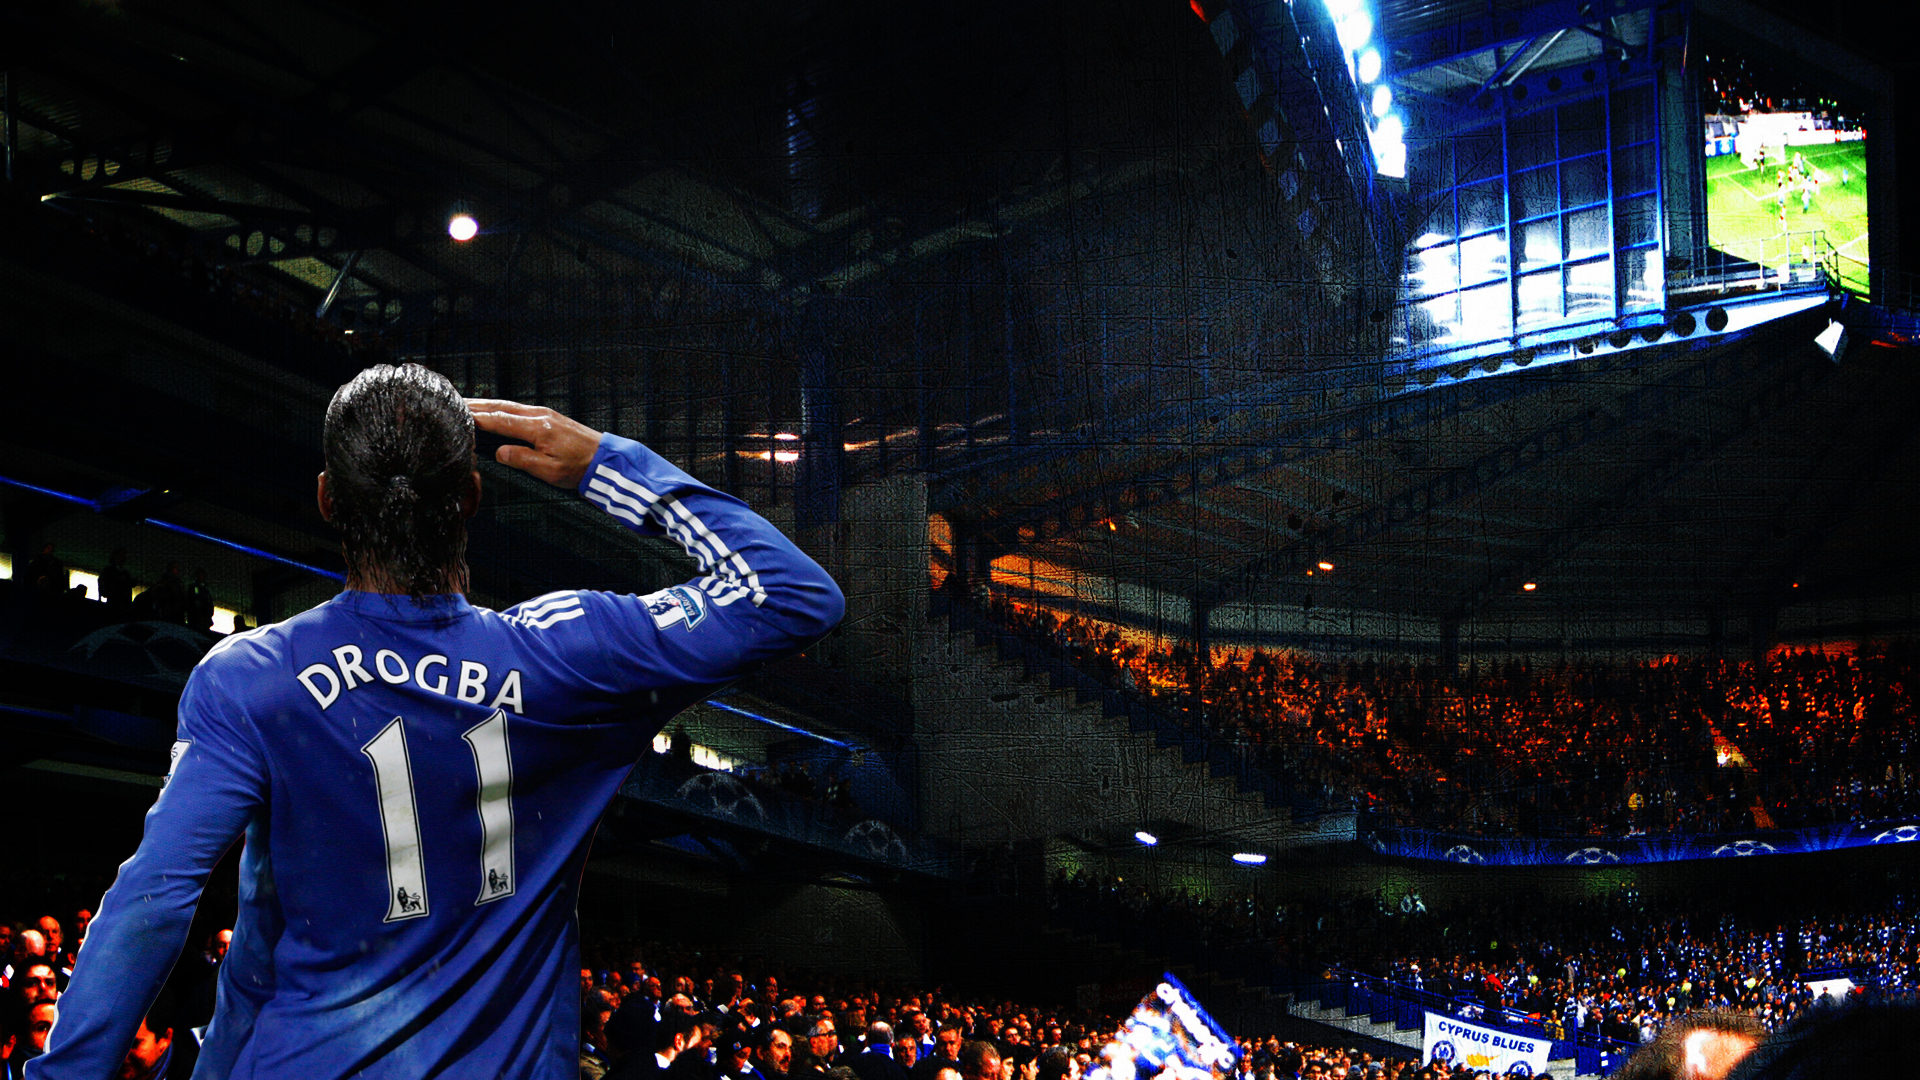 1920x1080 - Didier Drogba Wallpapers 25